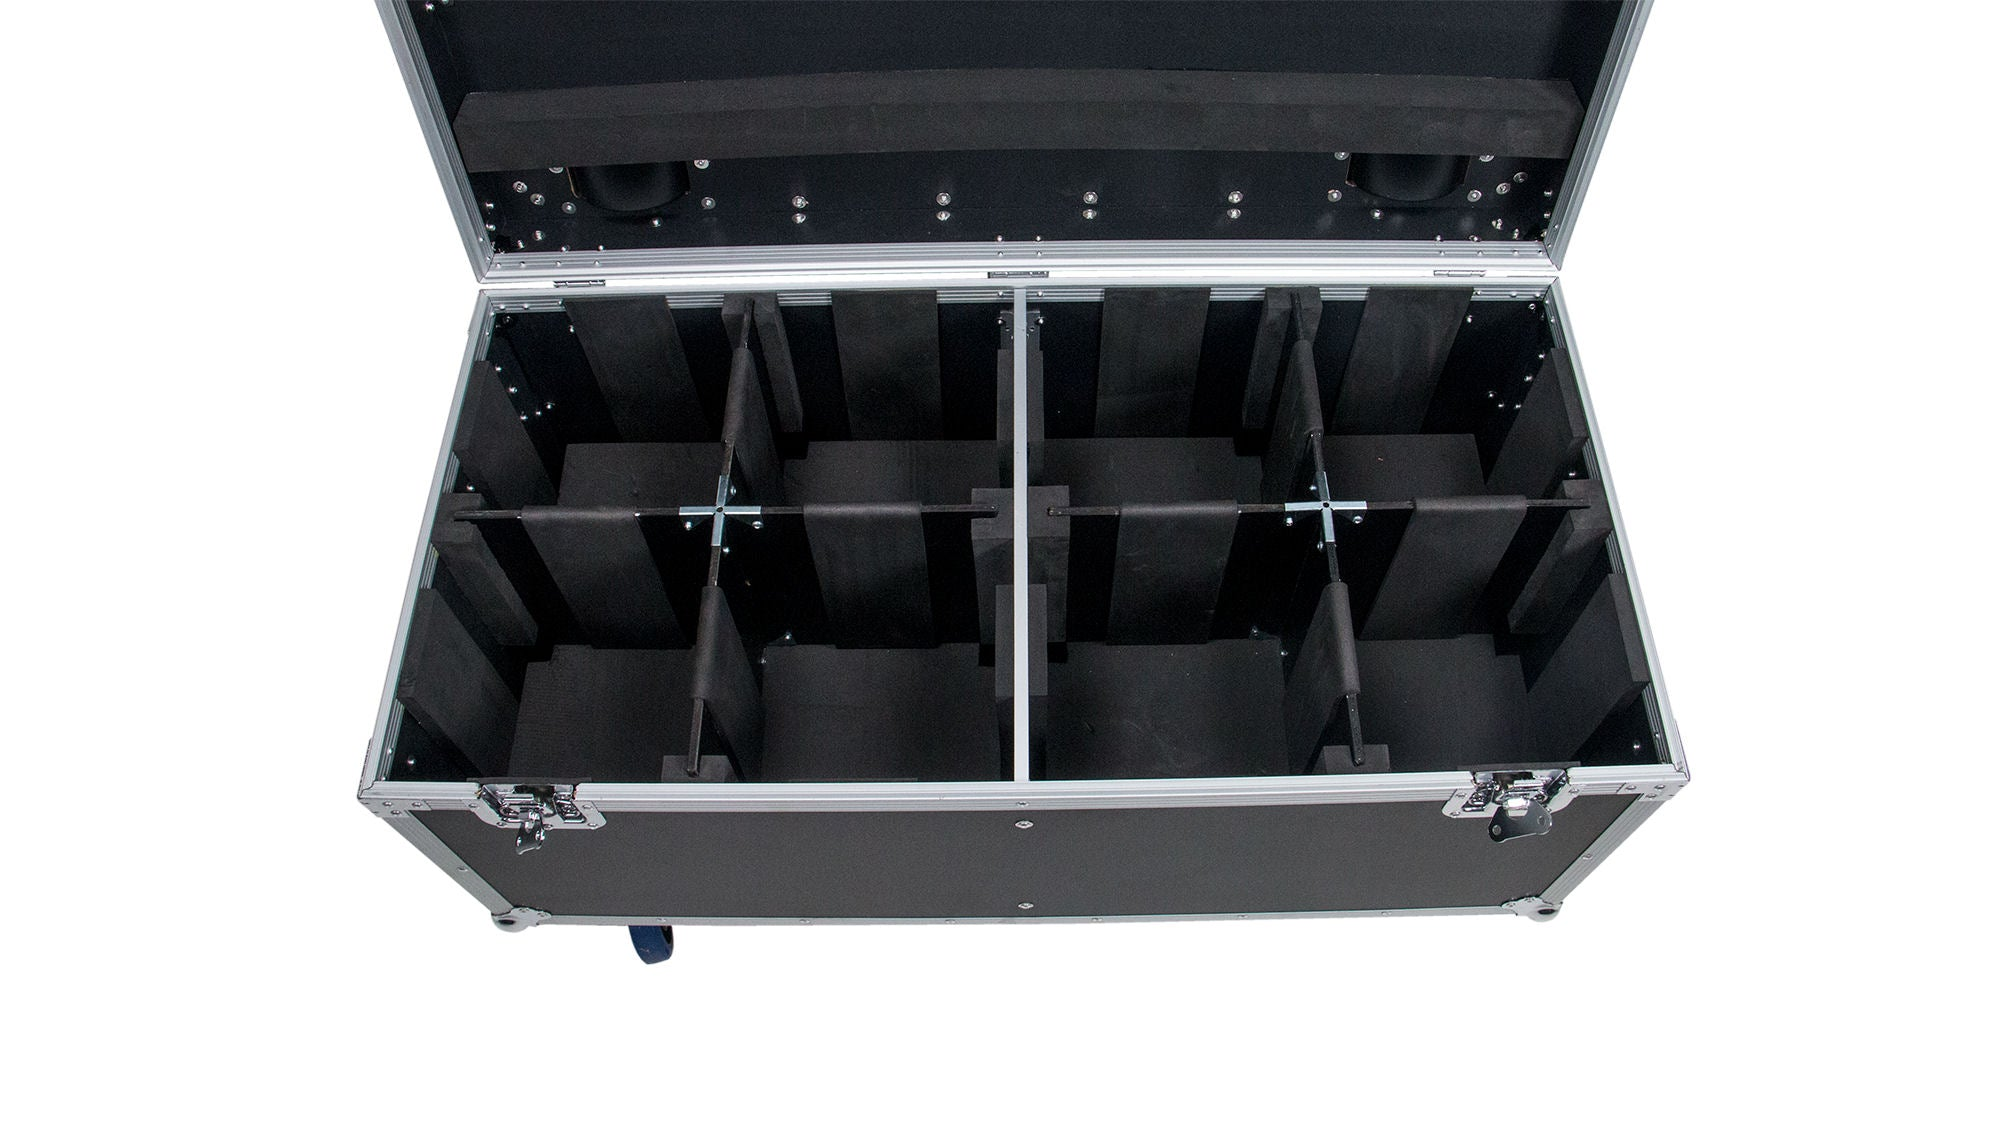 OSP PAR-CASE-8C ATA Universal Flight Case for 8 LED PAR CANS, * Upgraded with Casters & Caster Cups *